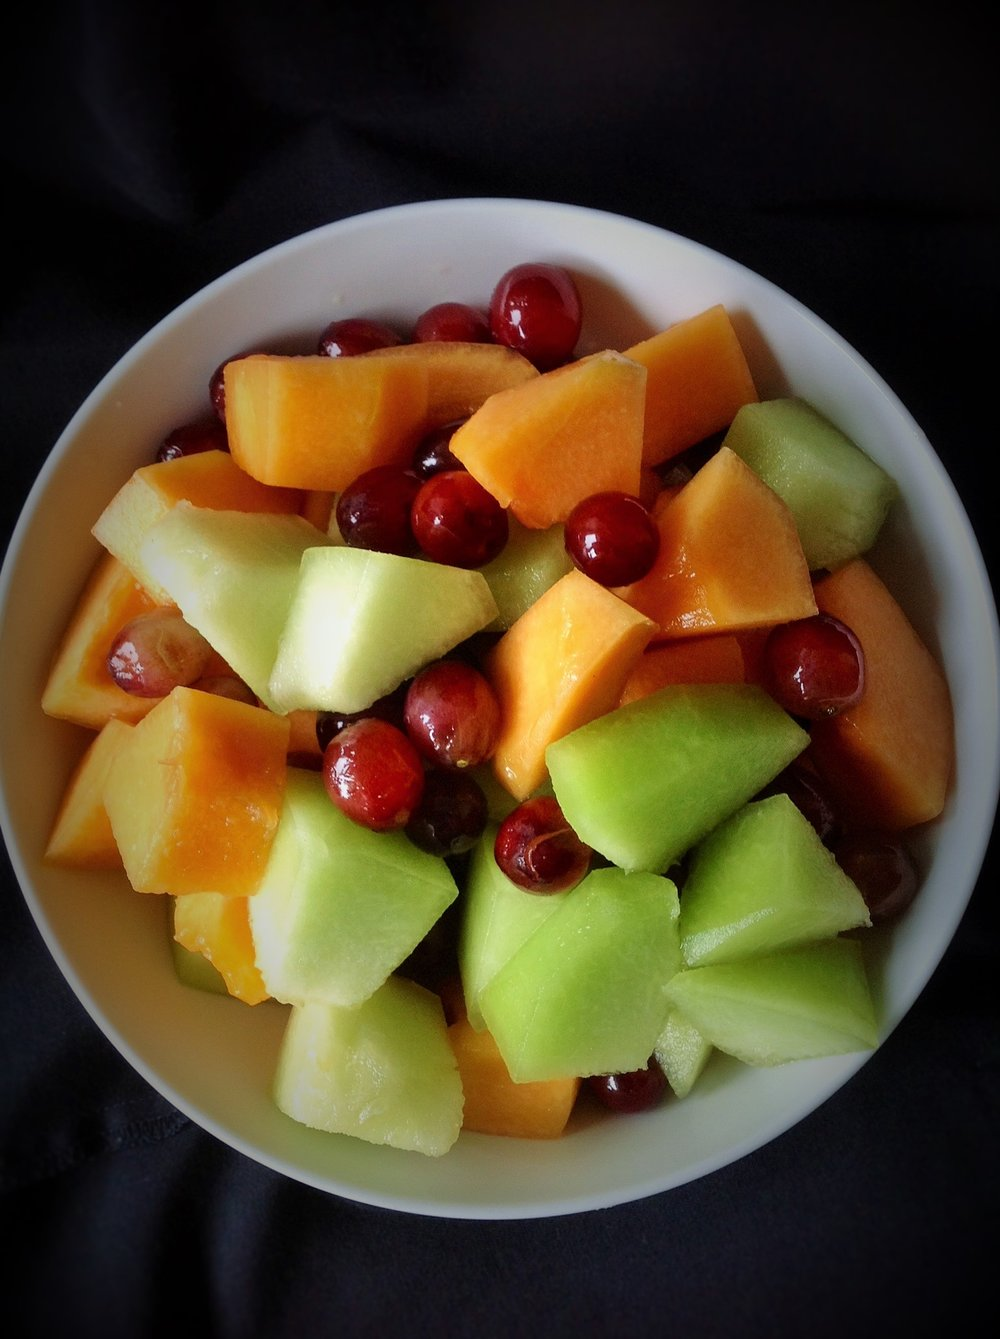 Melon Fruit Salad: Cut up some cantaloupe, honeydew, and red grapes.  In 5 minutes you can have delicious, healthy snacks for days